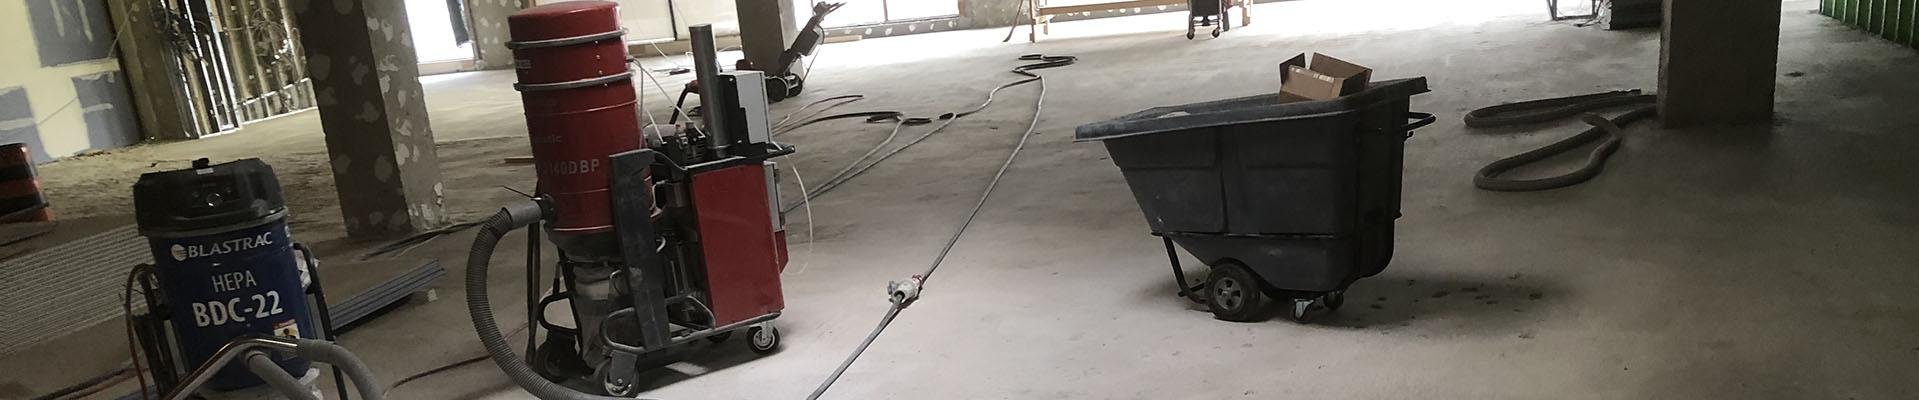 Concrete floor unfinished with vacuums and tools showing